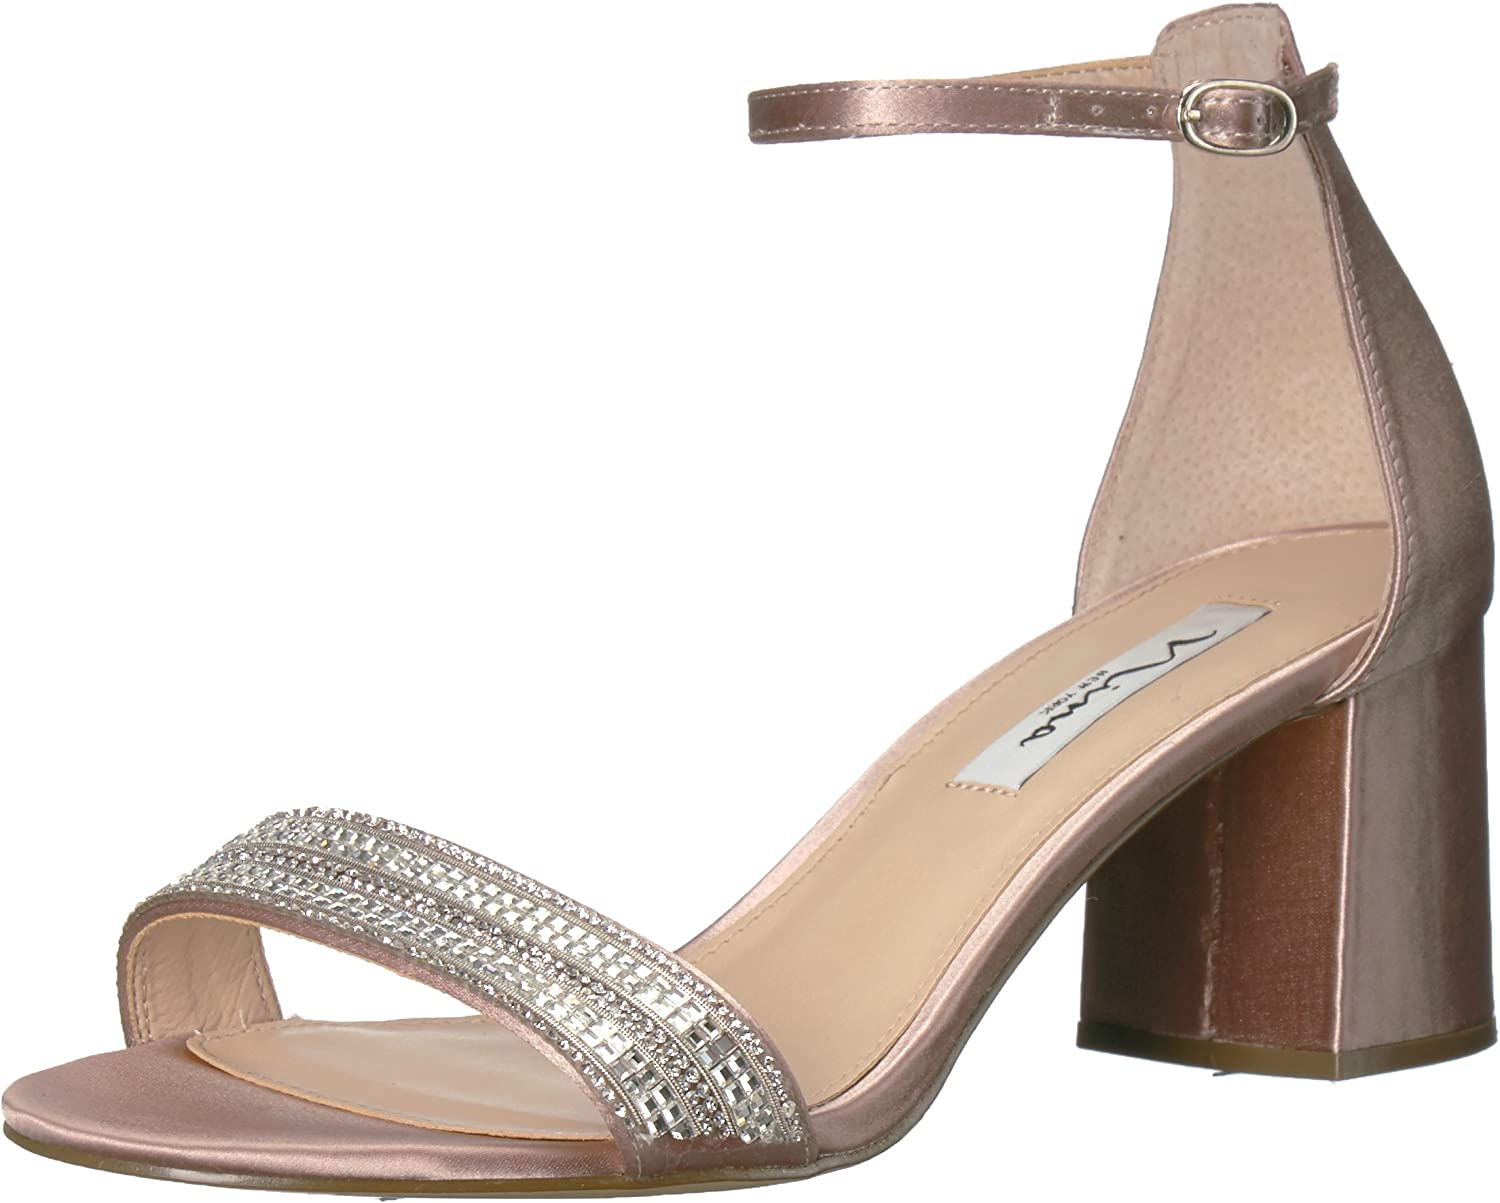 Nina Womens Elenora Dress Sandal